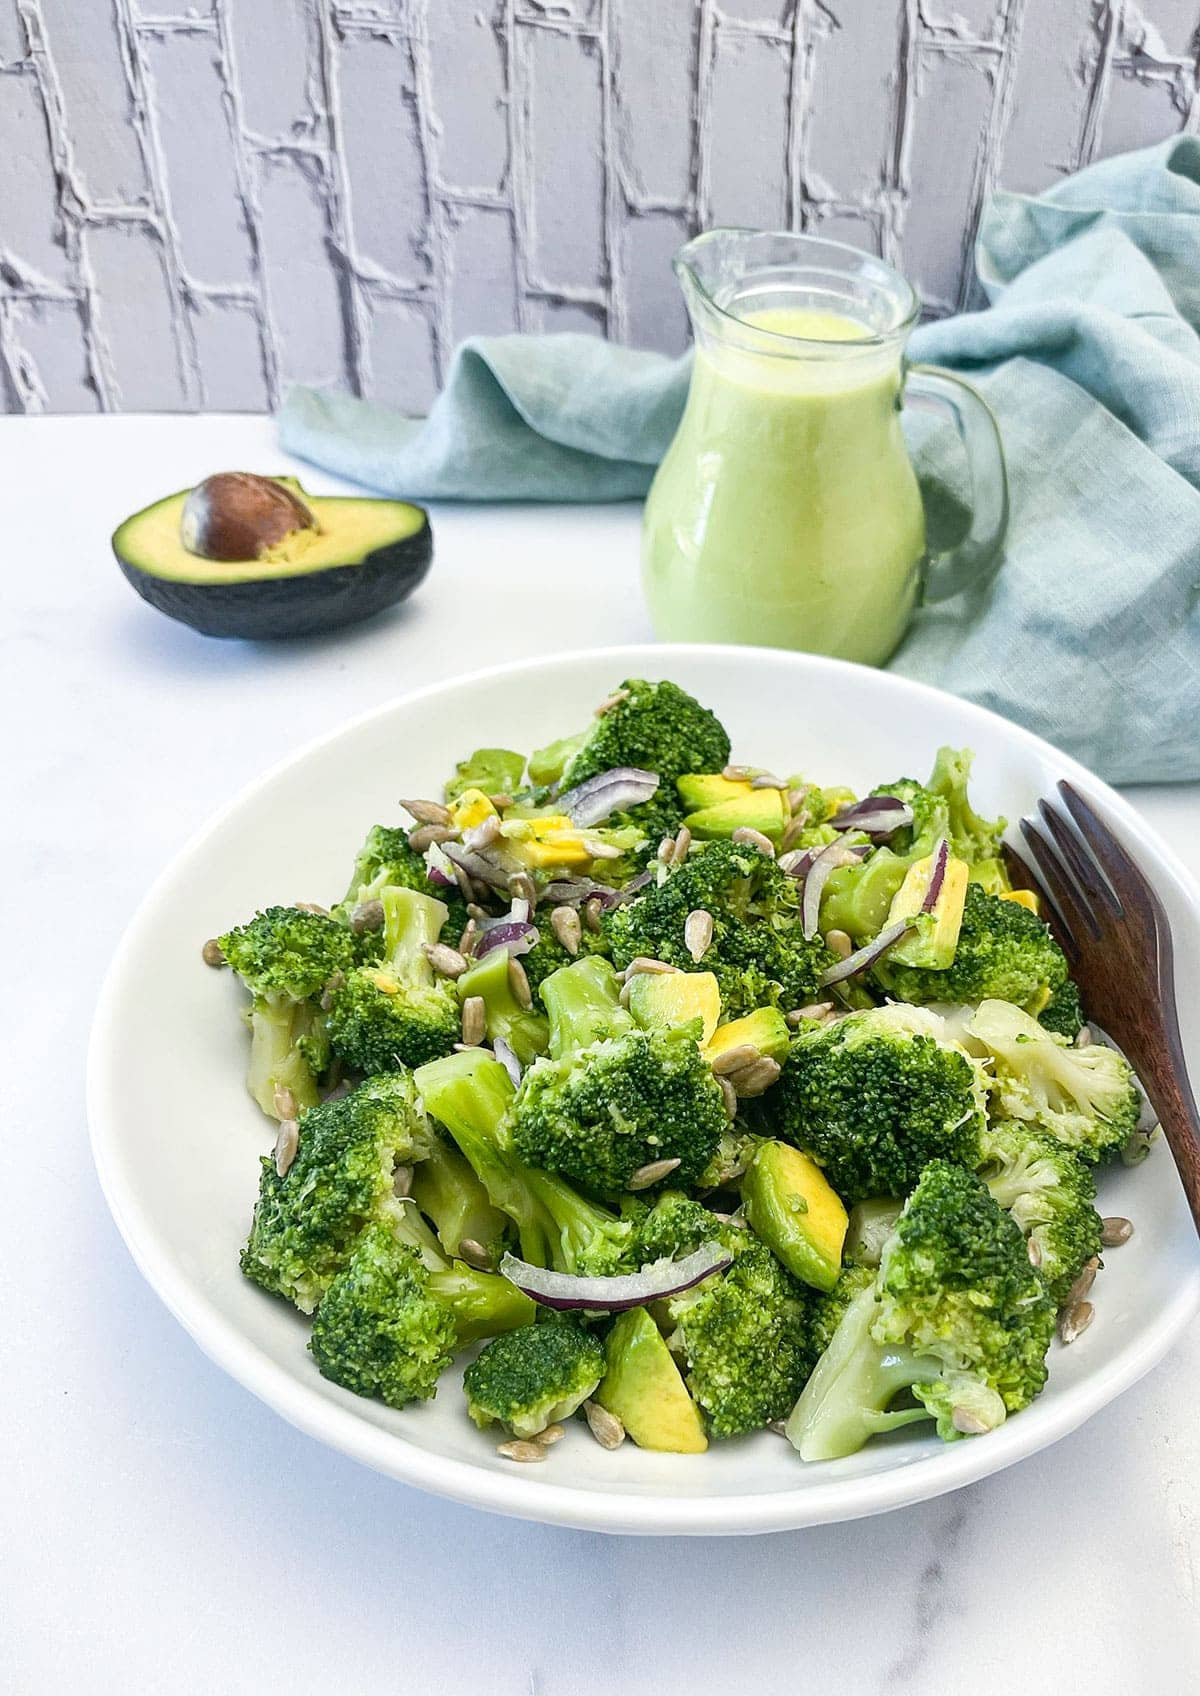 broccoli salad on a white plate with a salad dressing in the background and avocado